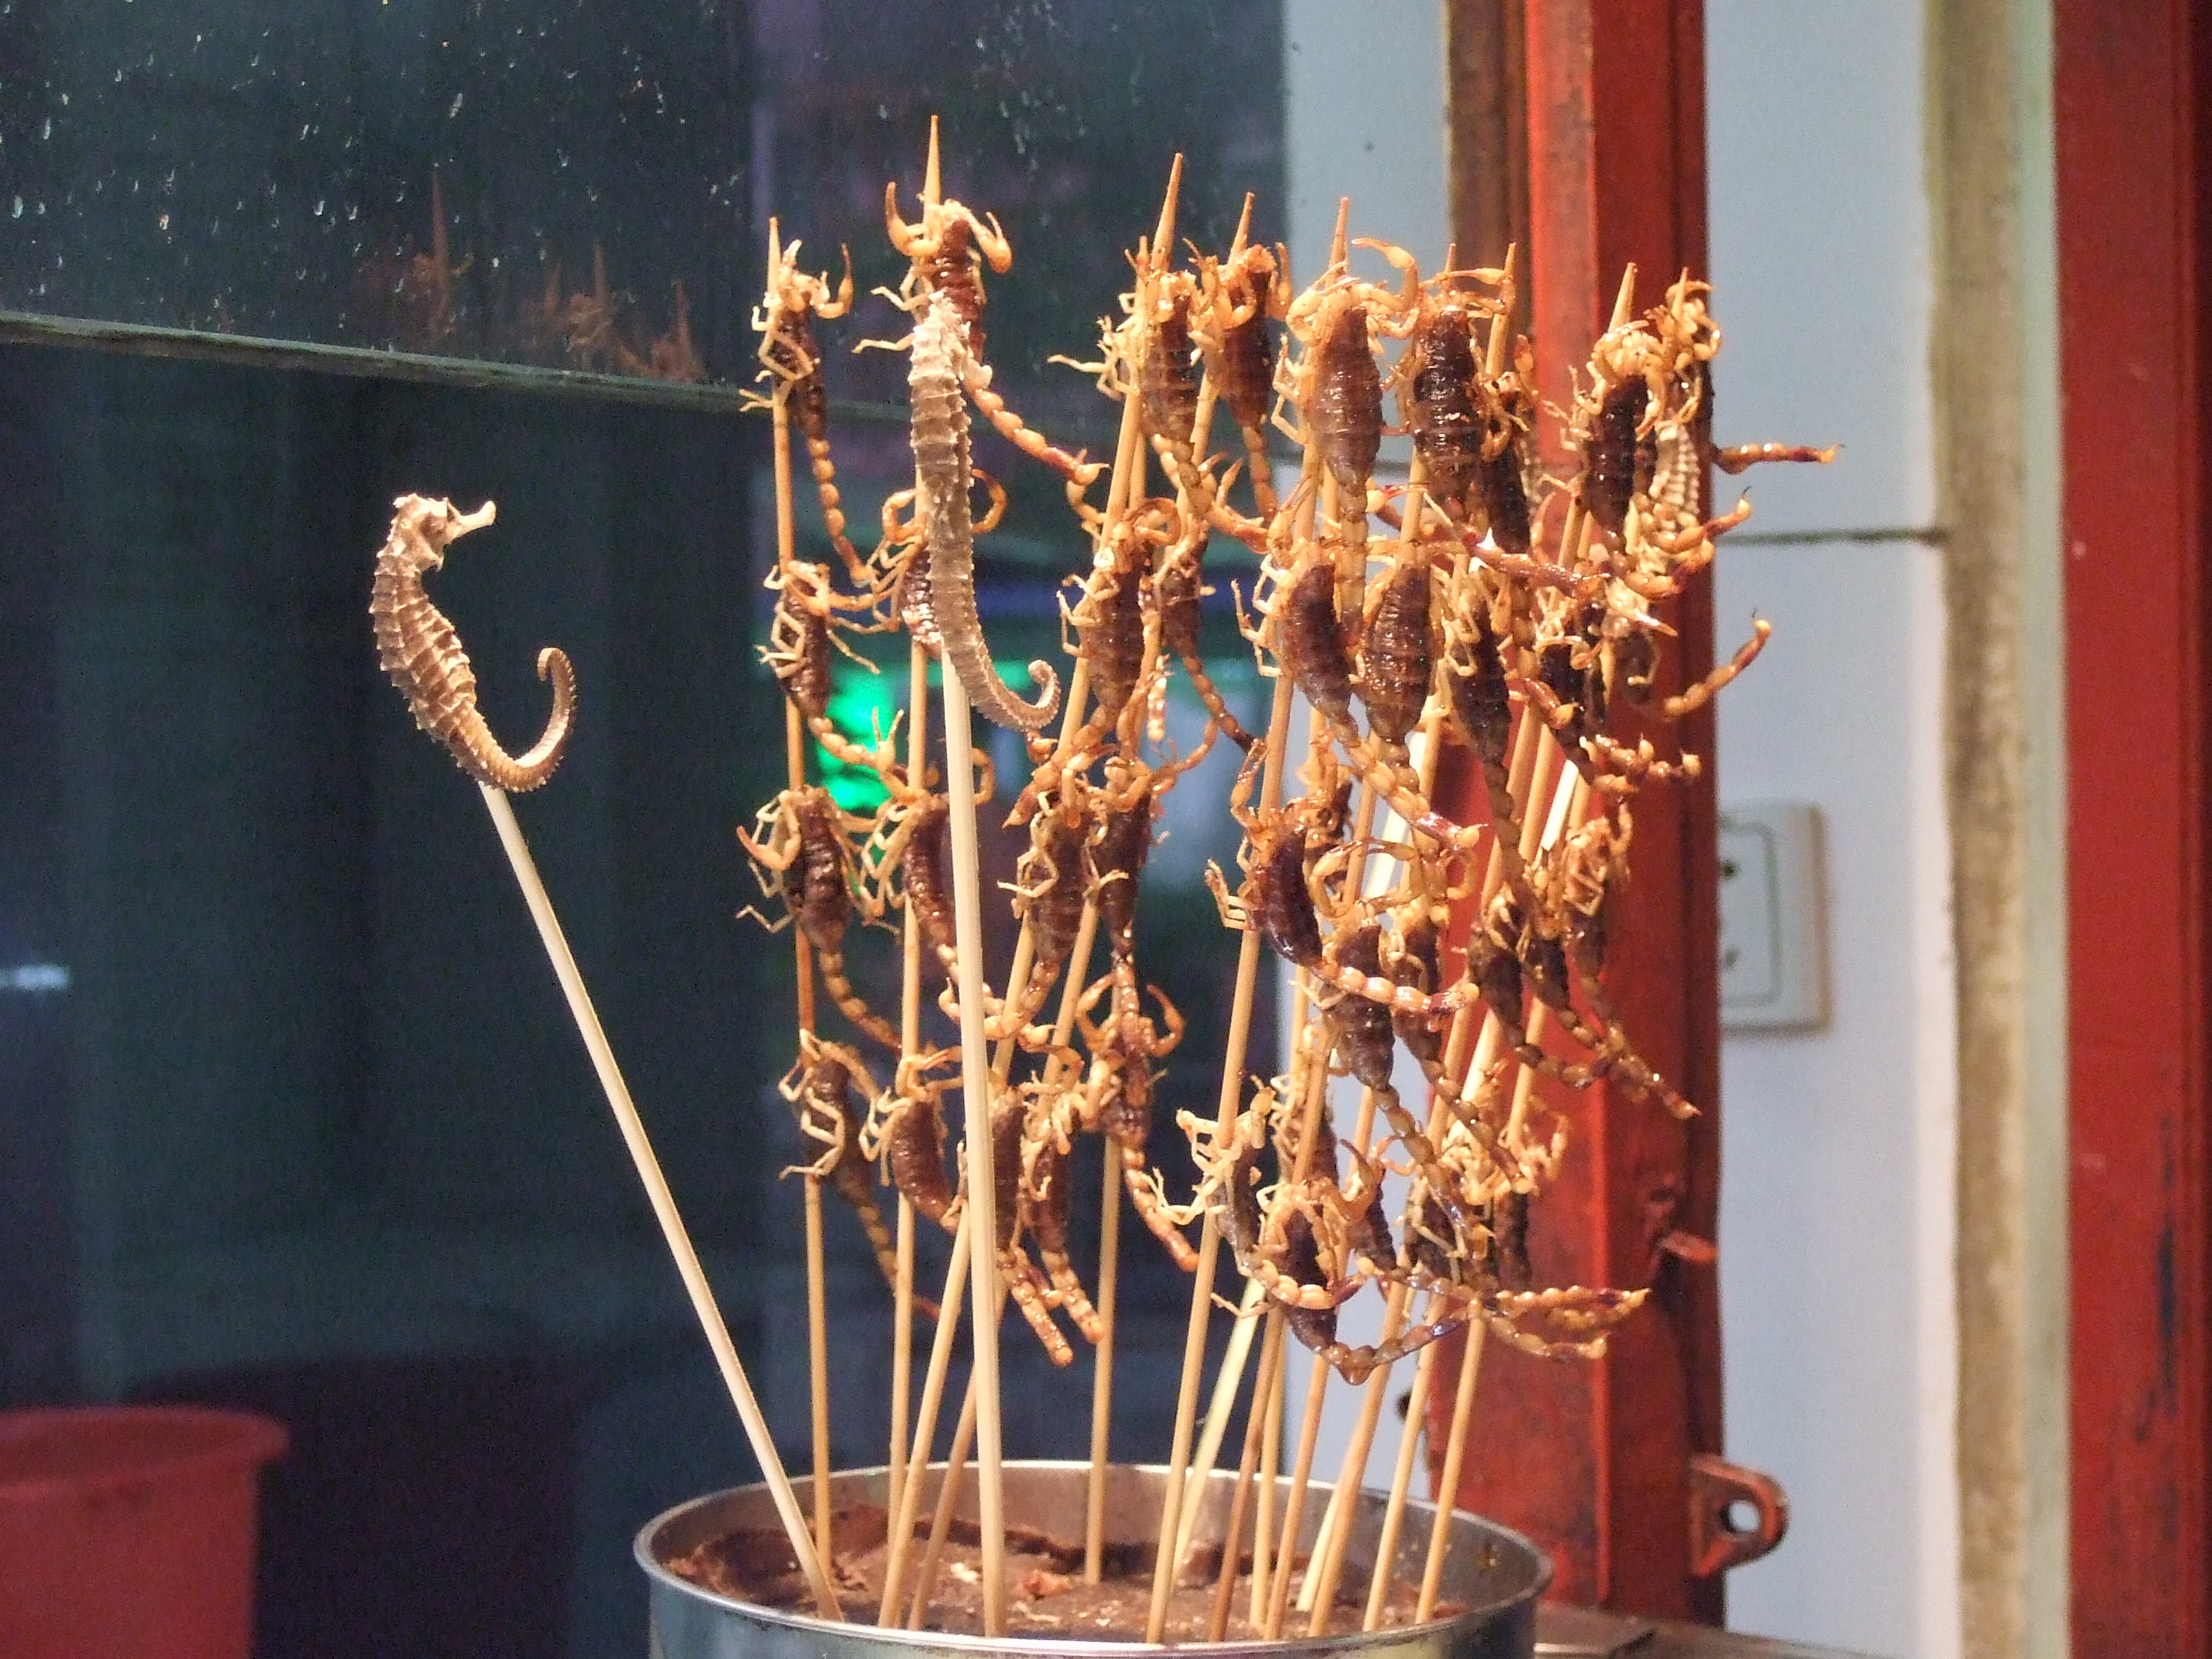 The Seahorses Do It Yourself